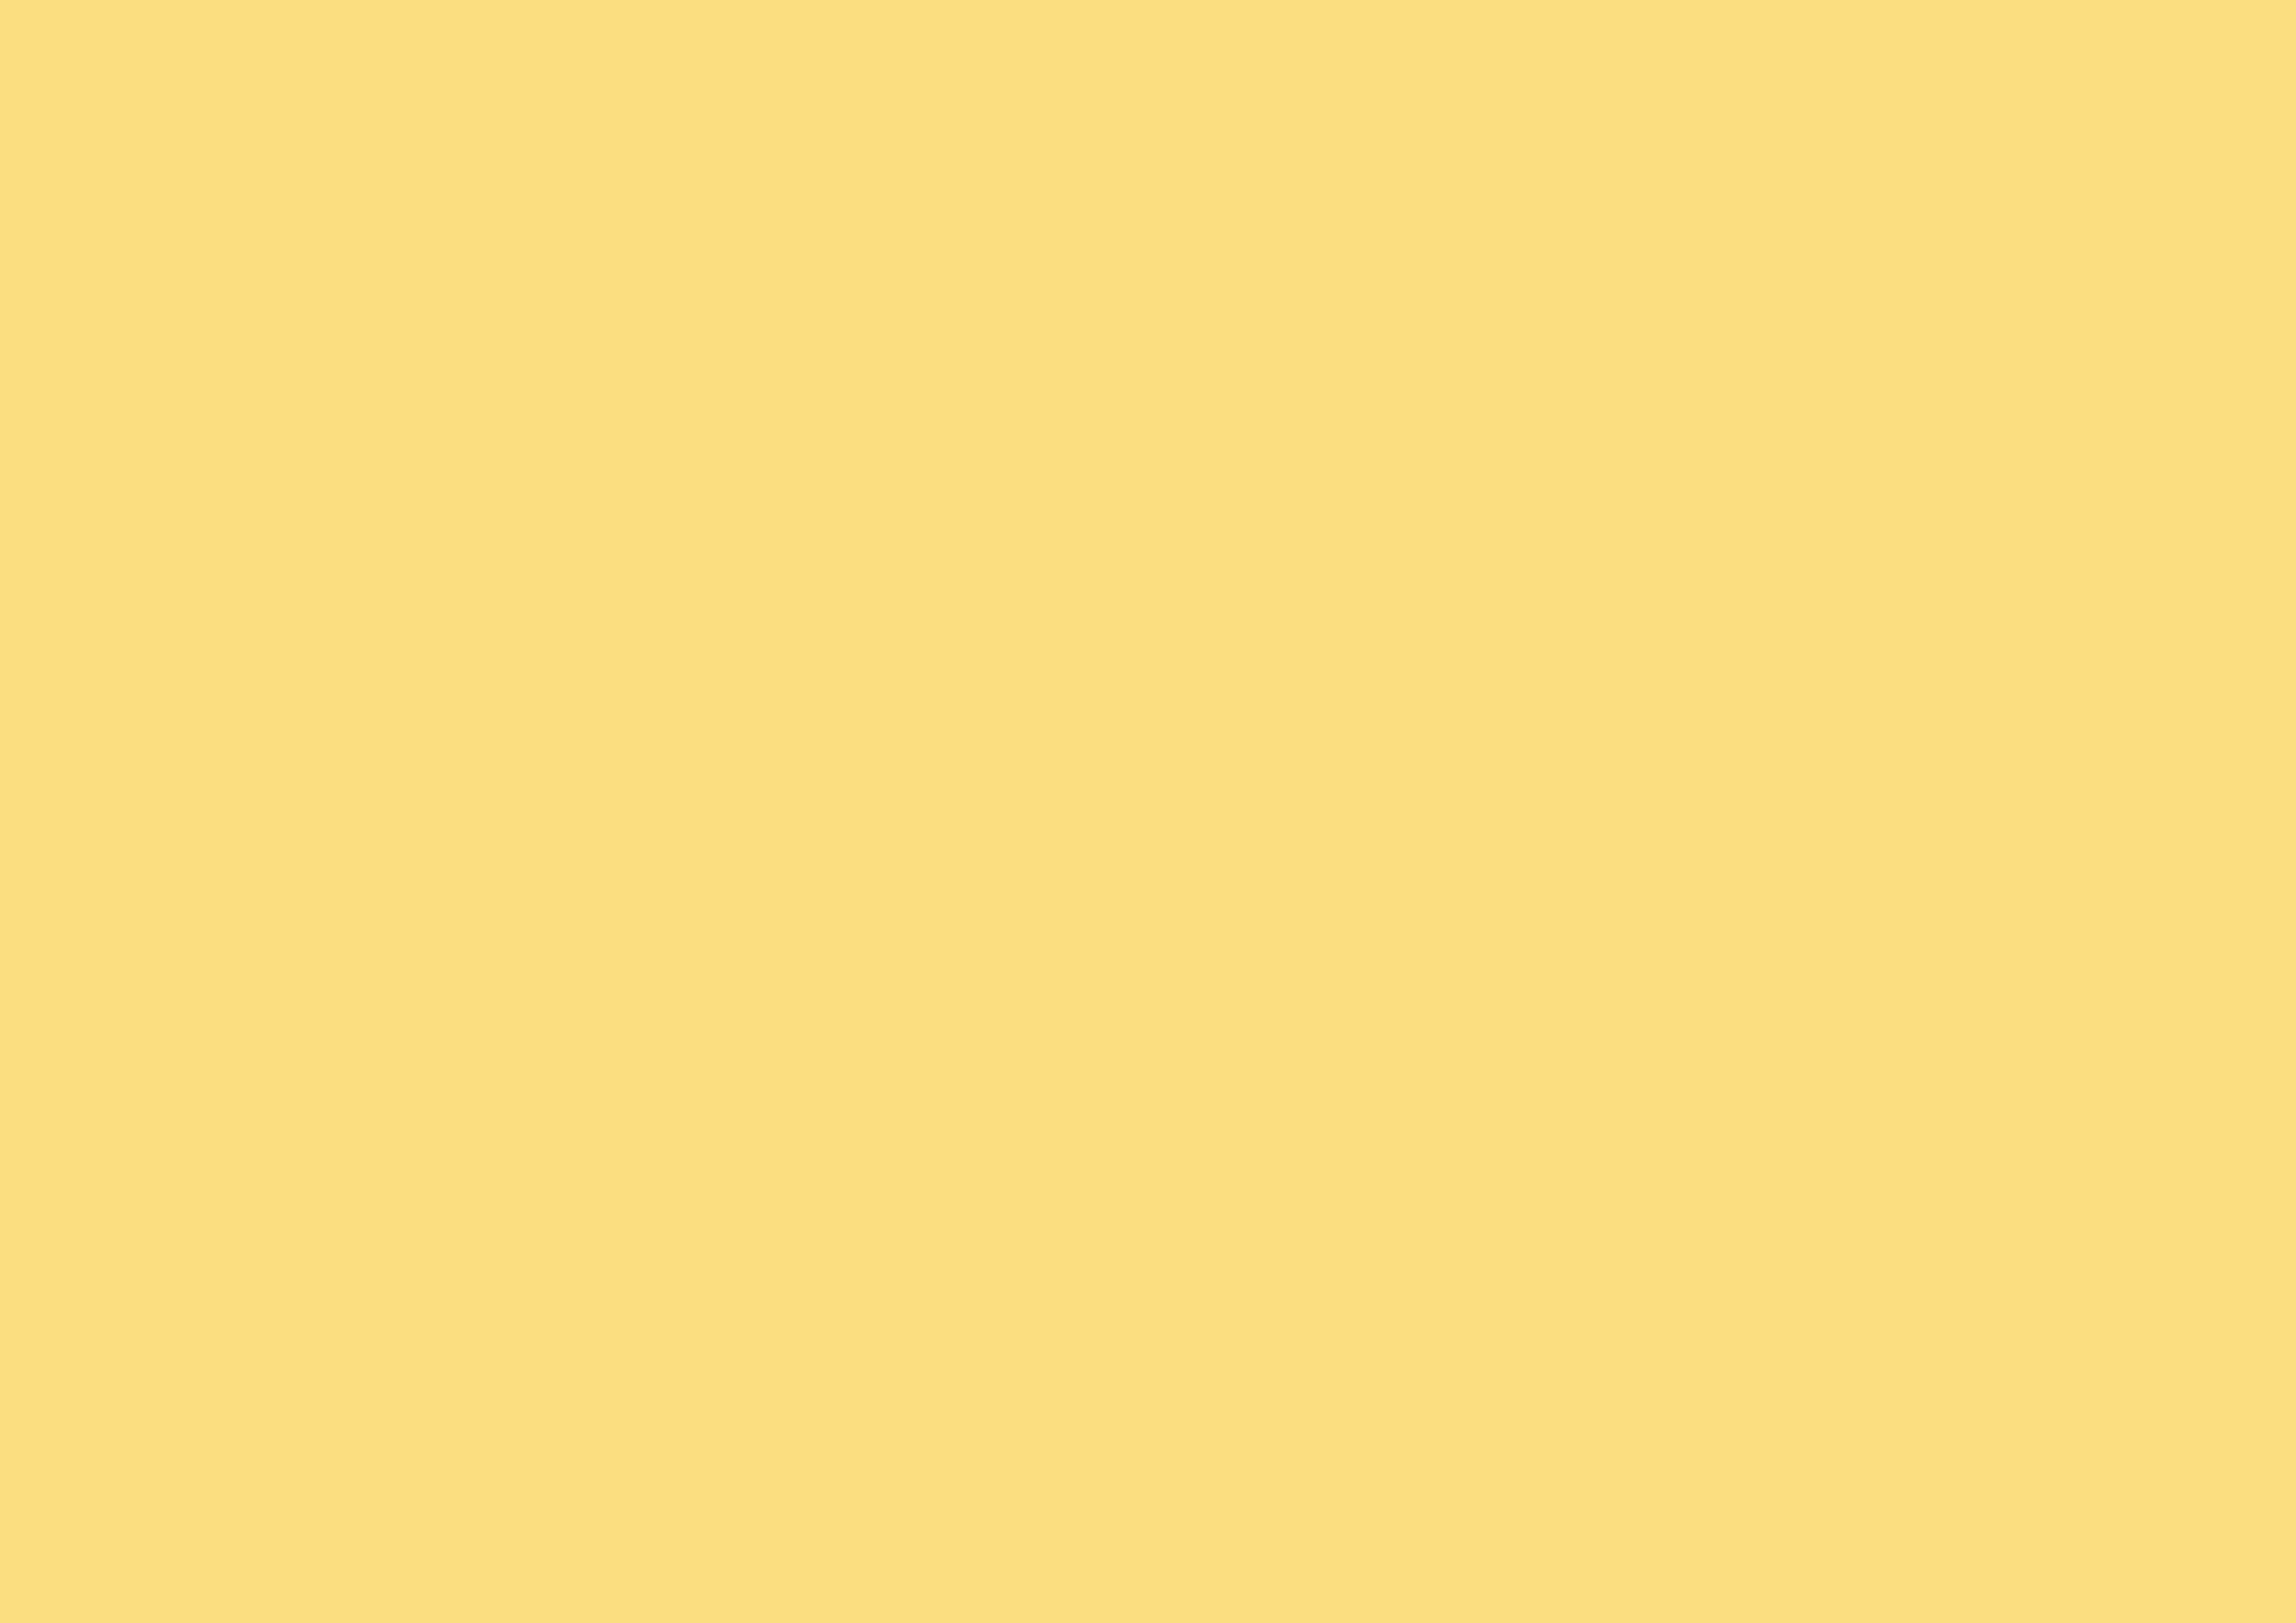 3508x2480 Mellow Yellow Solid Color Background